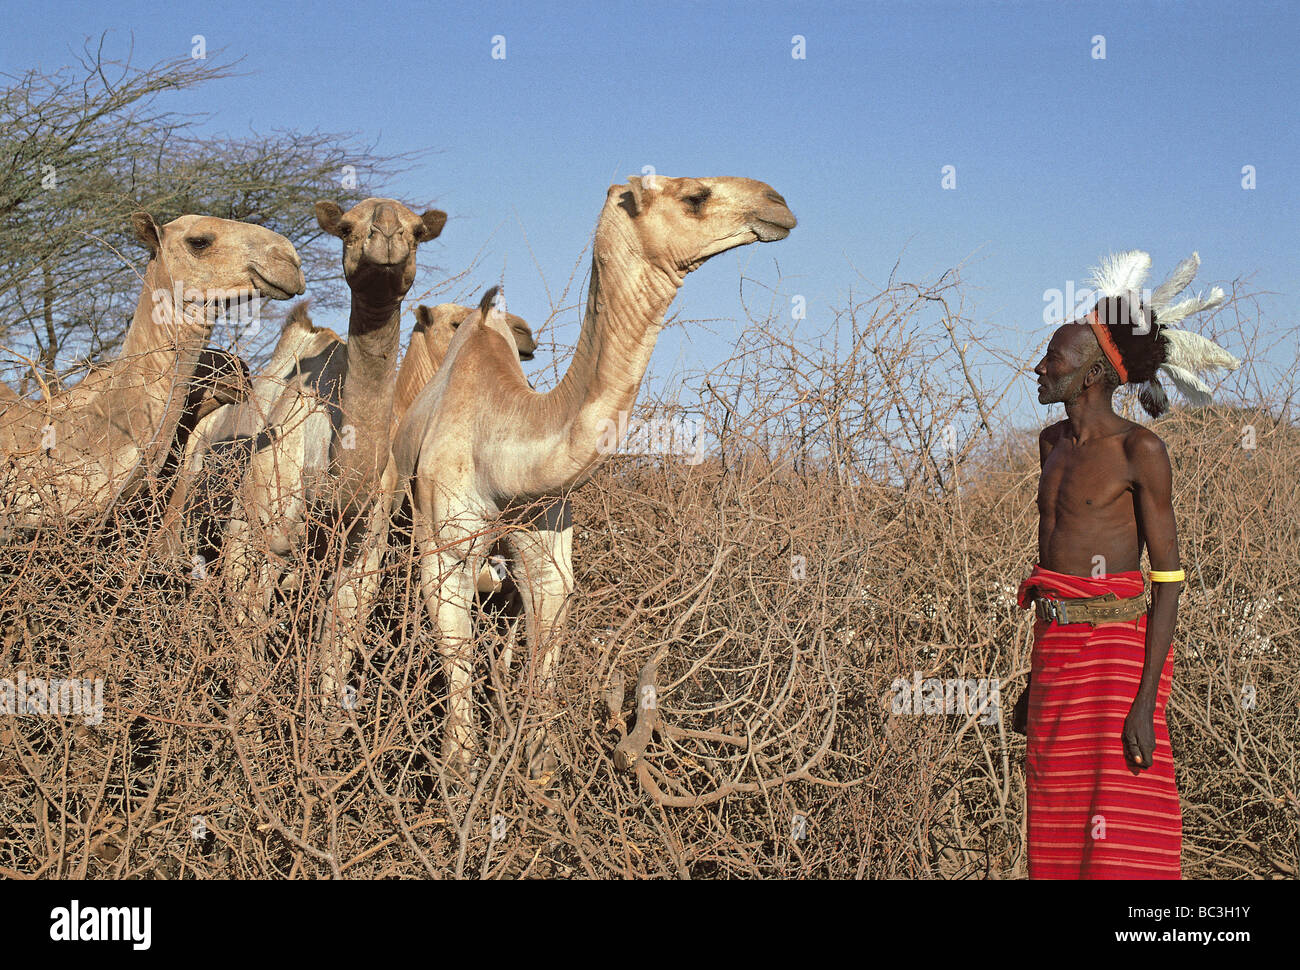 Samburu elder man with headdress of ostrich feathers inspecting his camels early morning northern Kenya East Africa - Stock Image